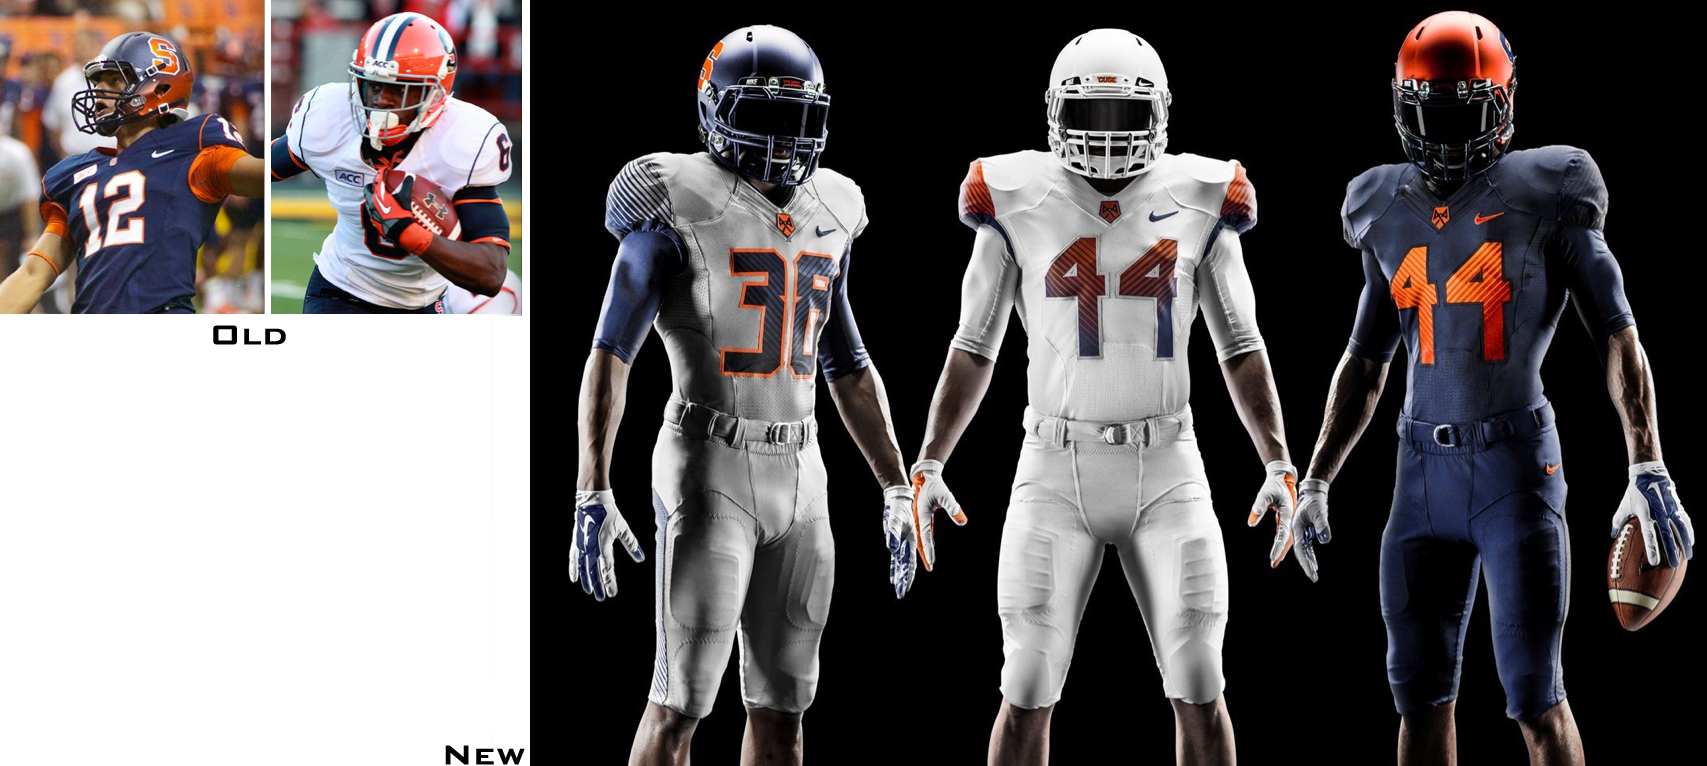 9f8a5c5e8 ... new uni set. The diagonal lines within the numerals form a 44-degree  angle